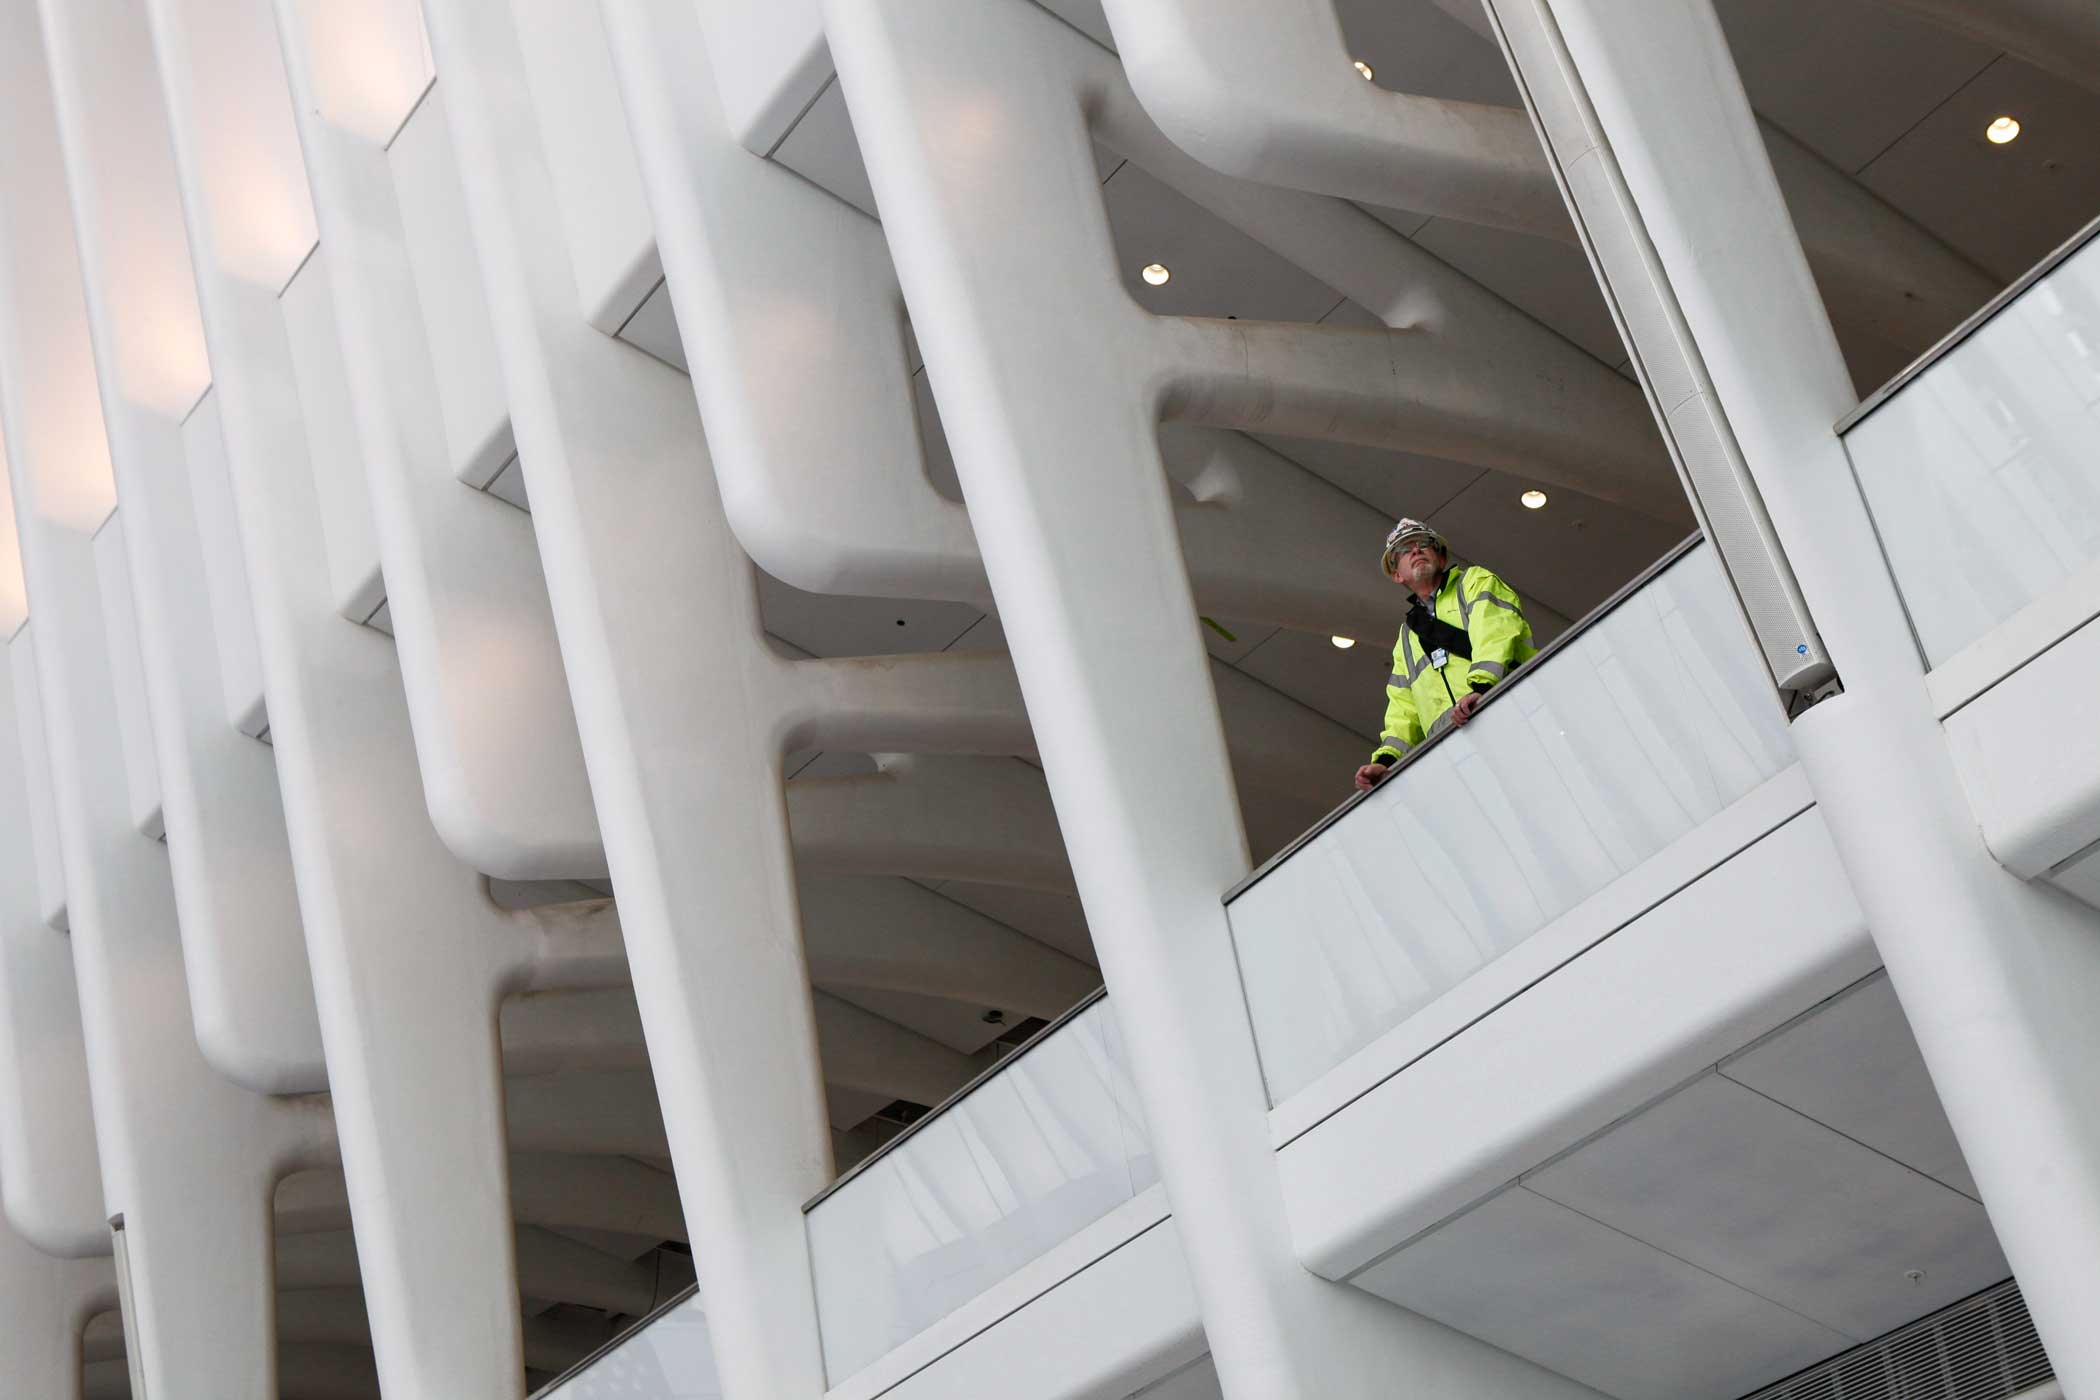 A worker watches people below.